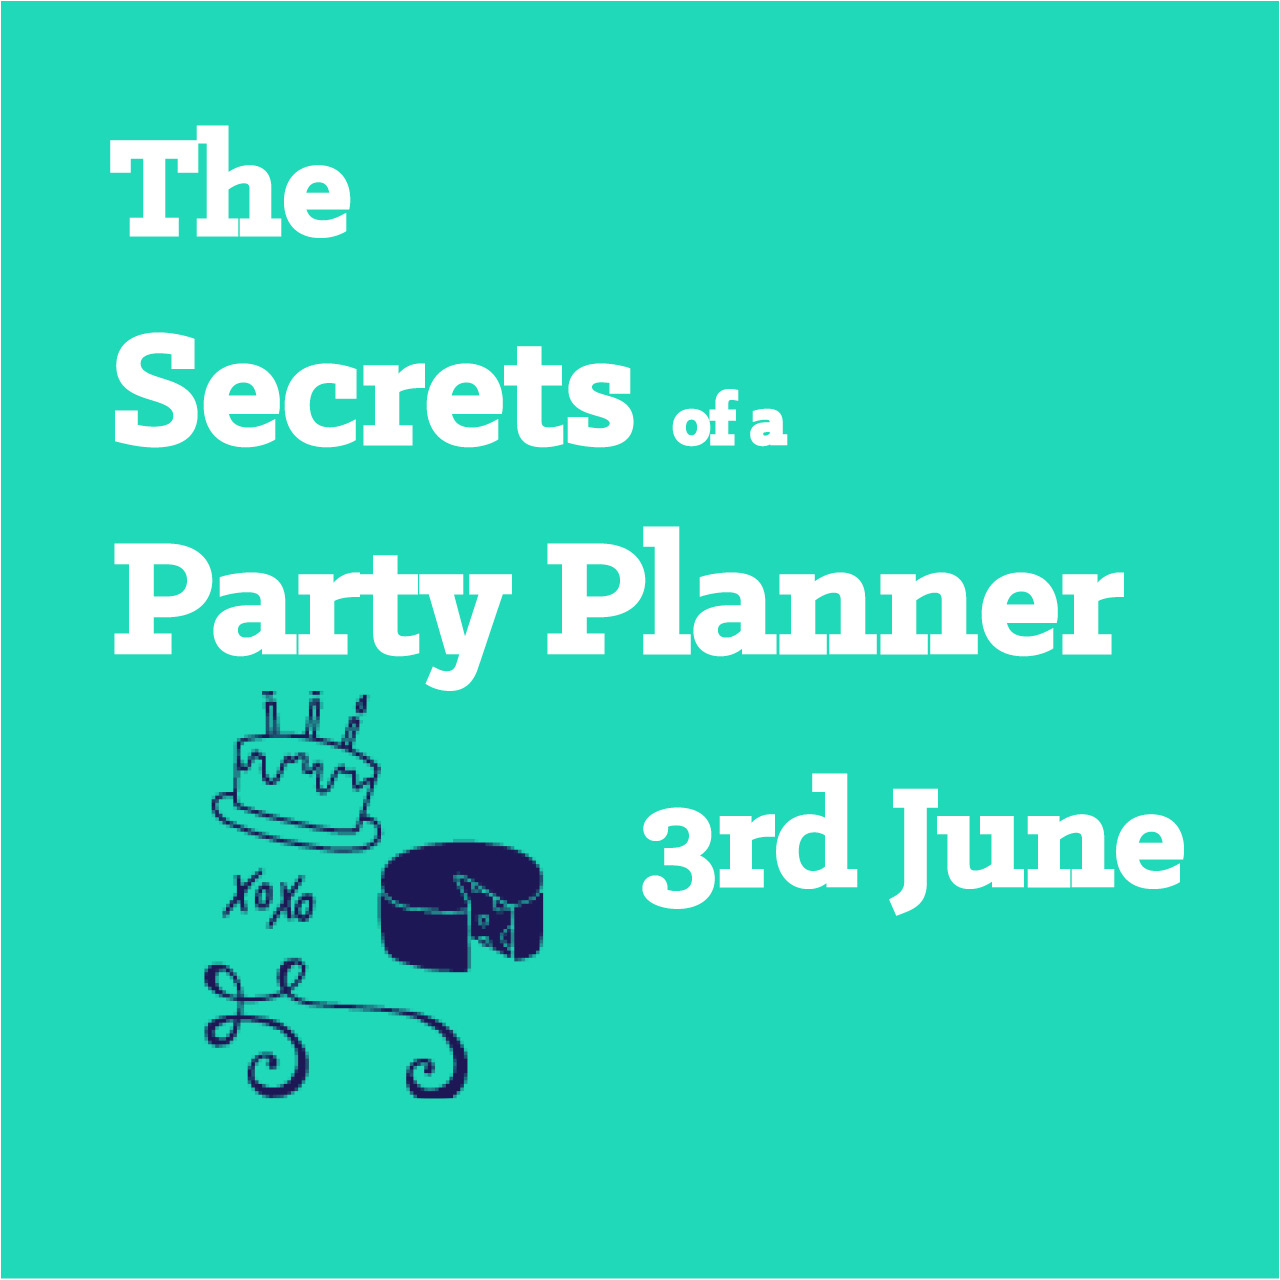 The Secrets of a Party Planner